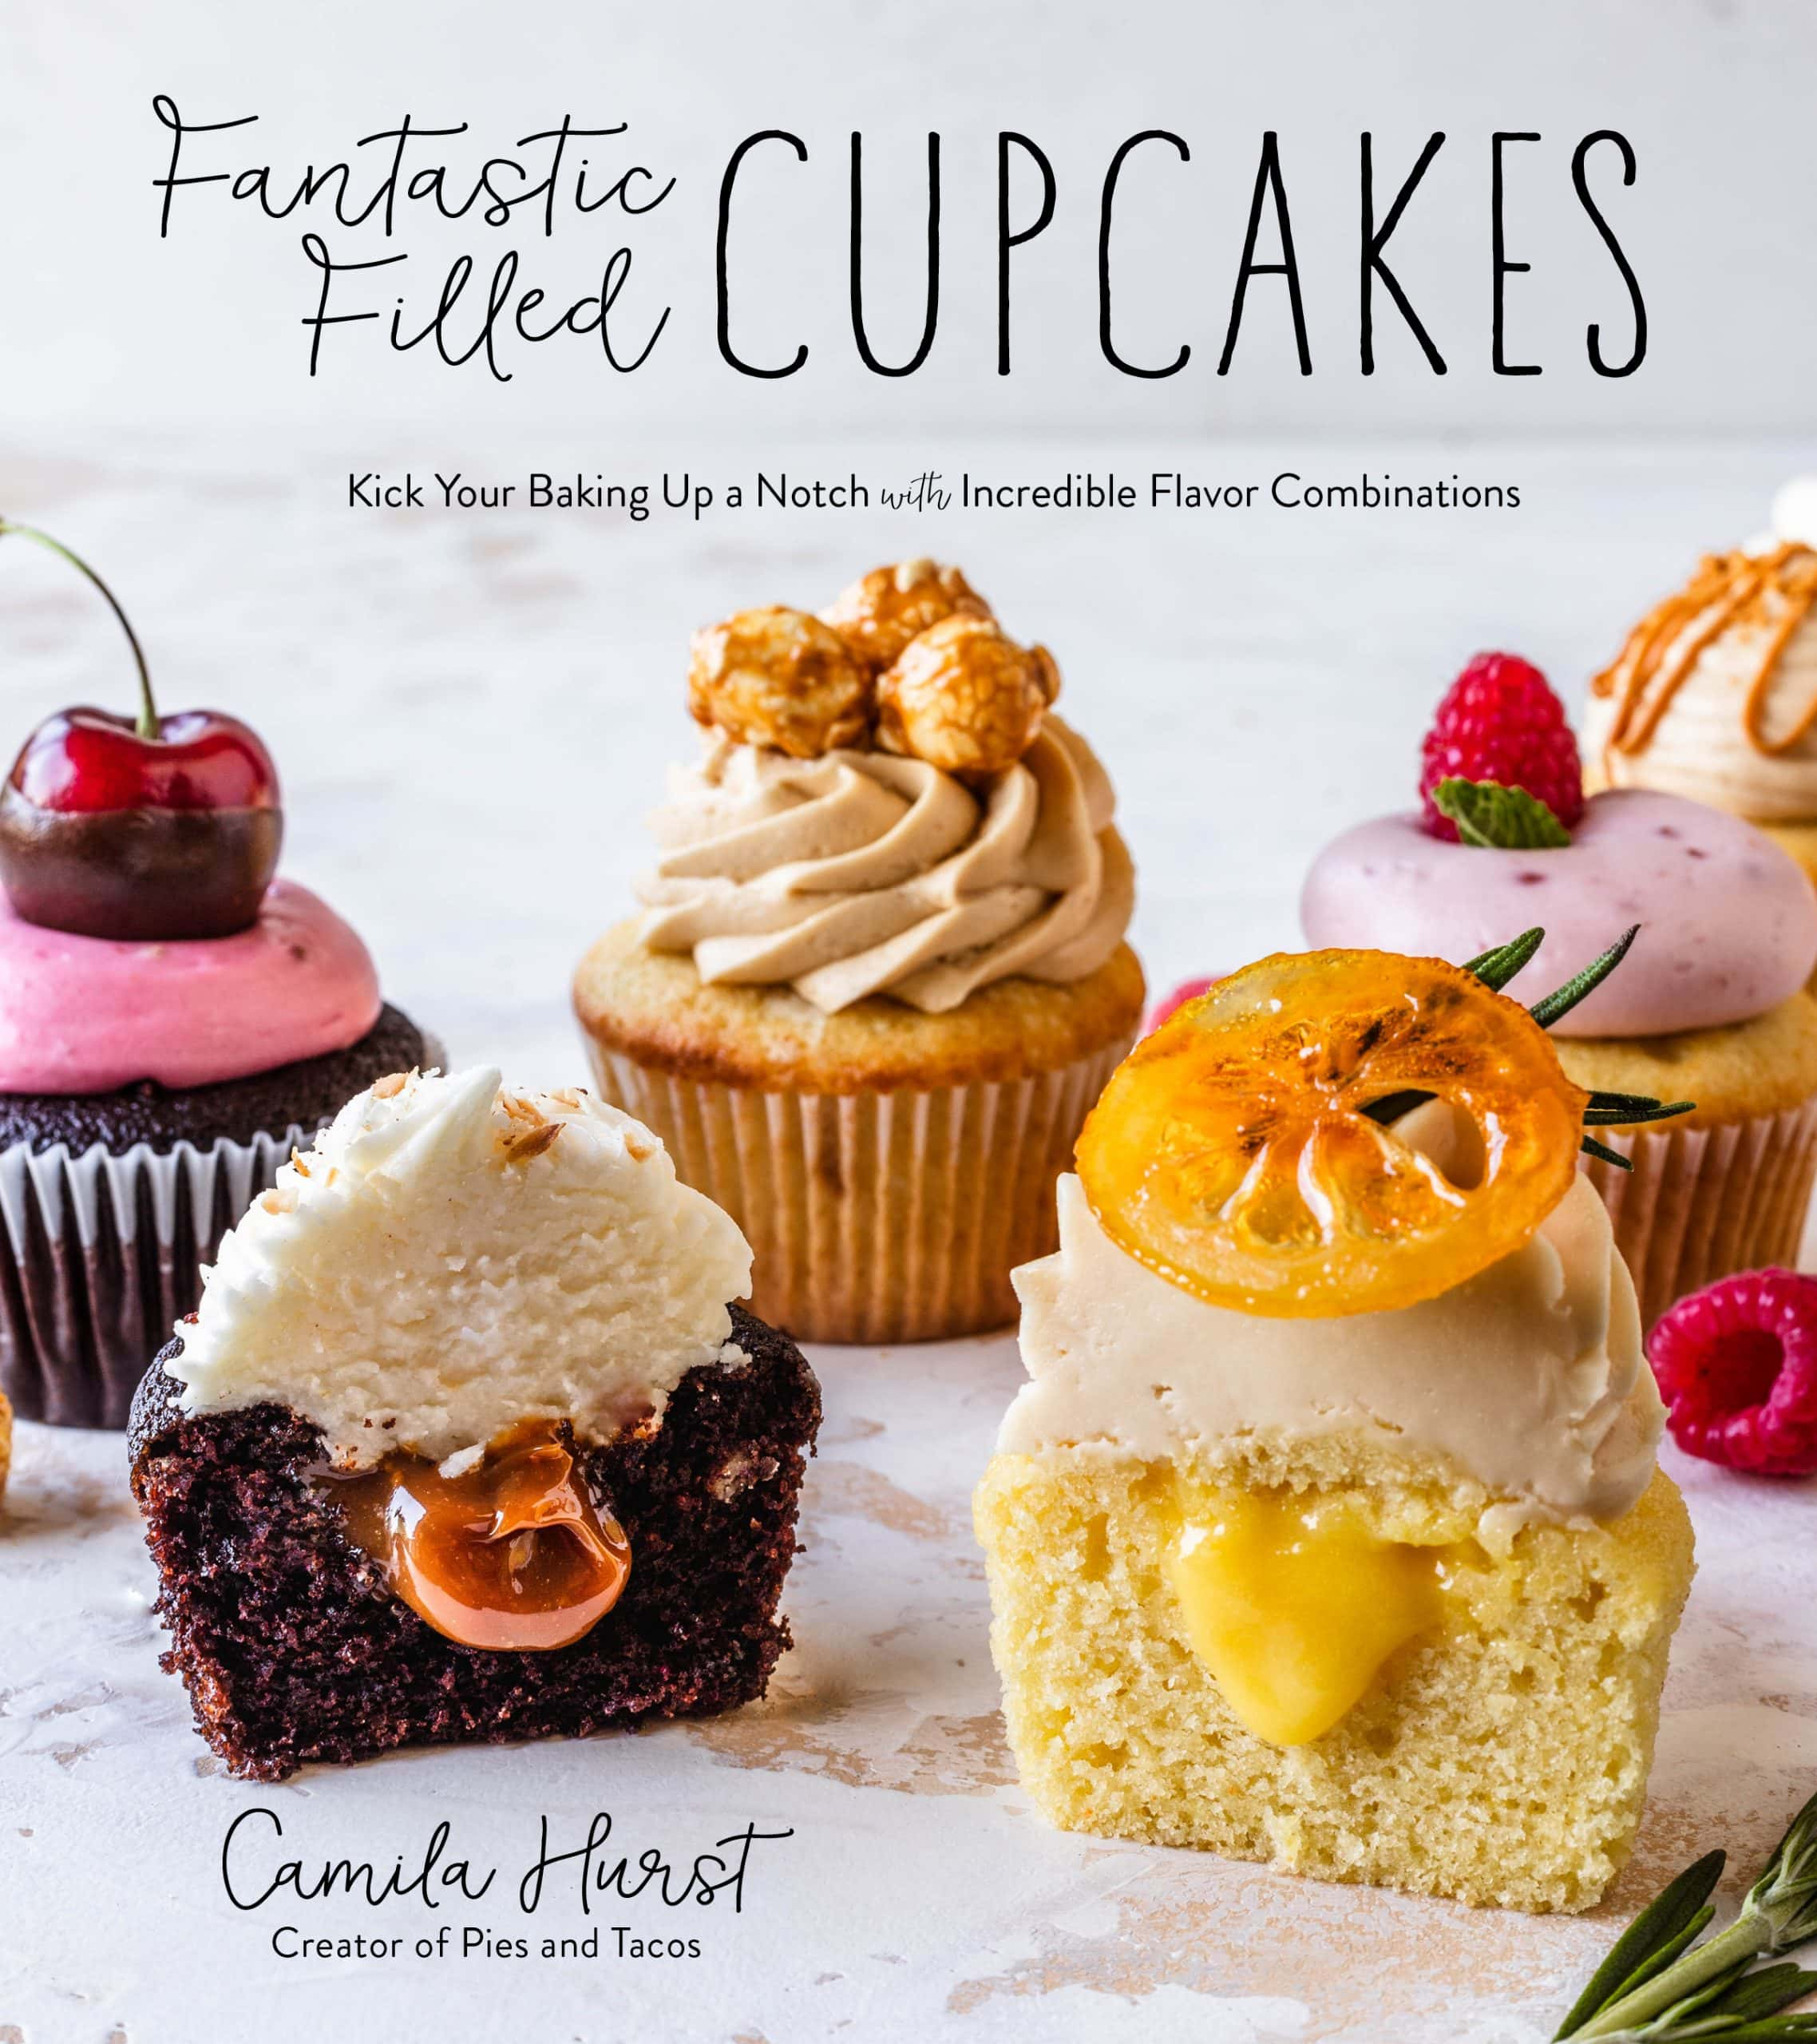 Fantastic Filled Cupcakes cookbook cover.